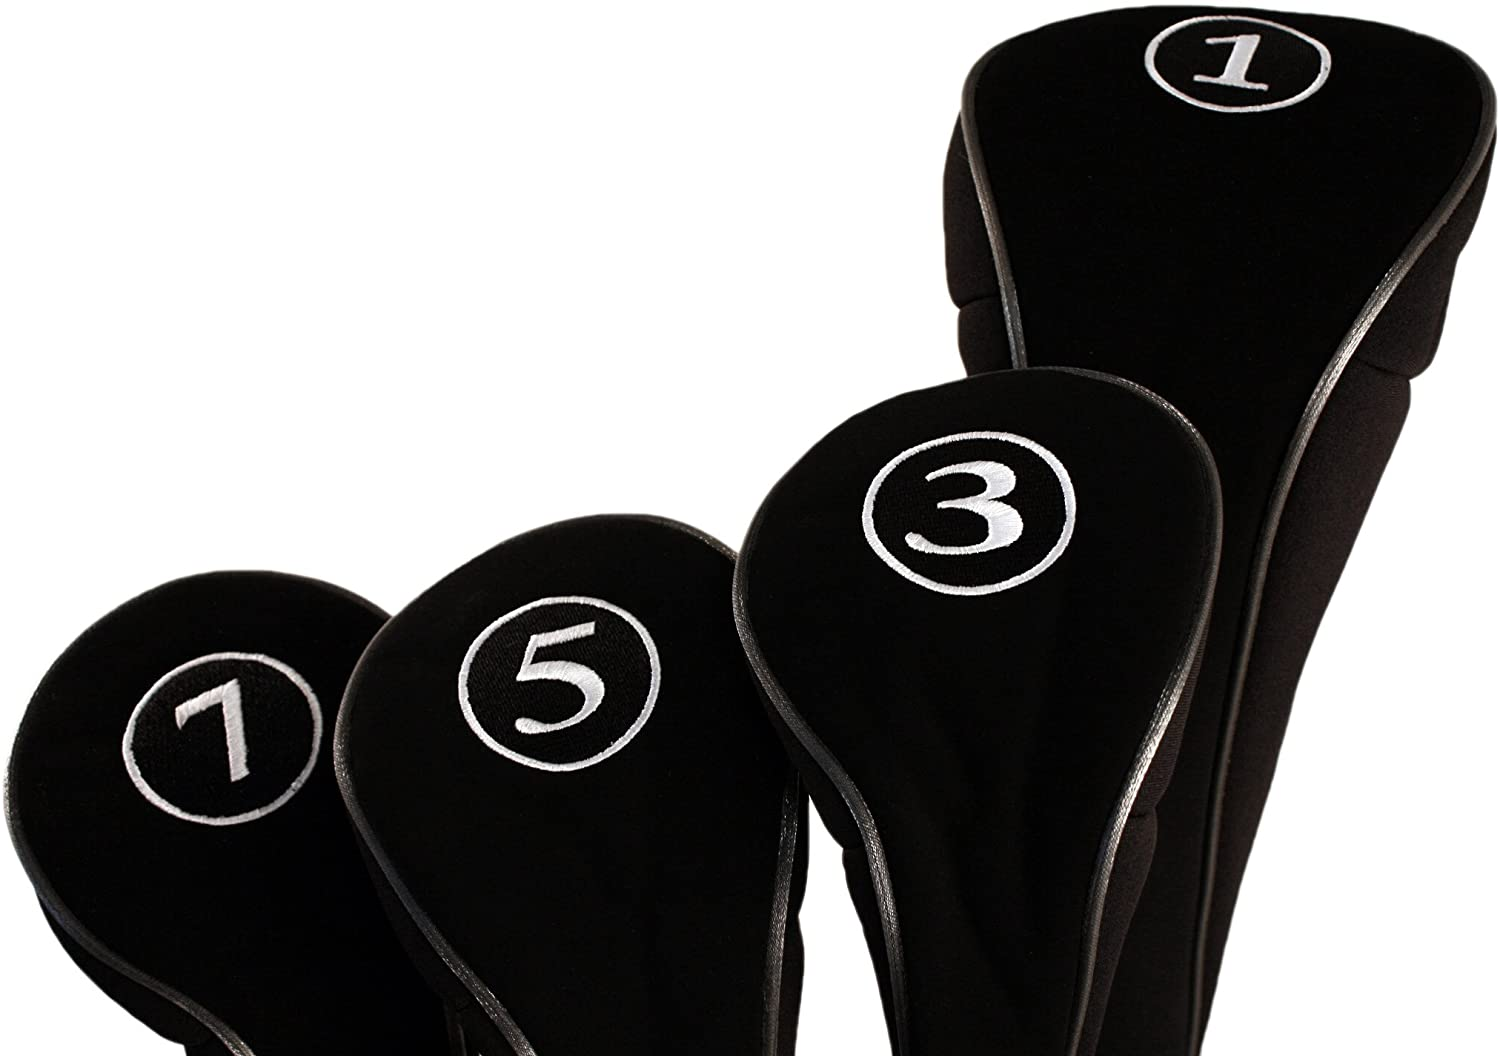 Black Golf Zipper Head Covers Driver 1 3 5 7 Fairway Woods Headcovers Metal Neoprene Traditional Plain Protective Covers Fits All Fairway Clubs and Drivers up to 460cc for Golfing Buddies